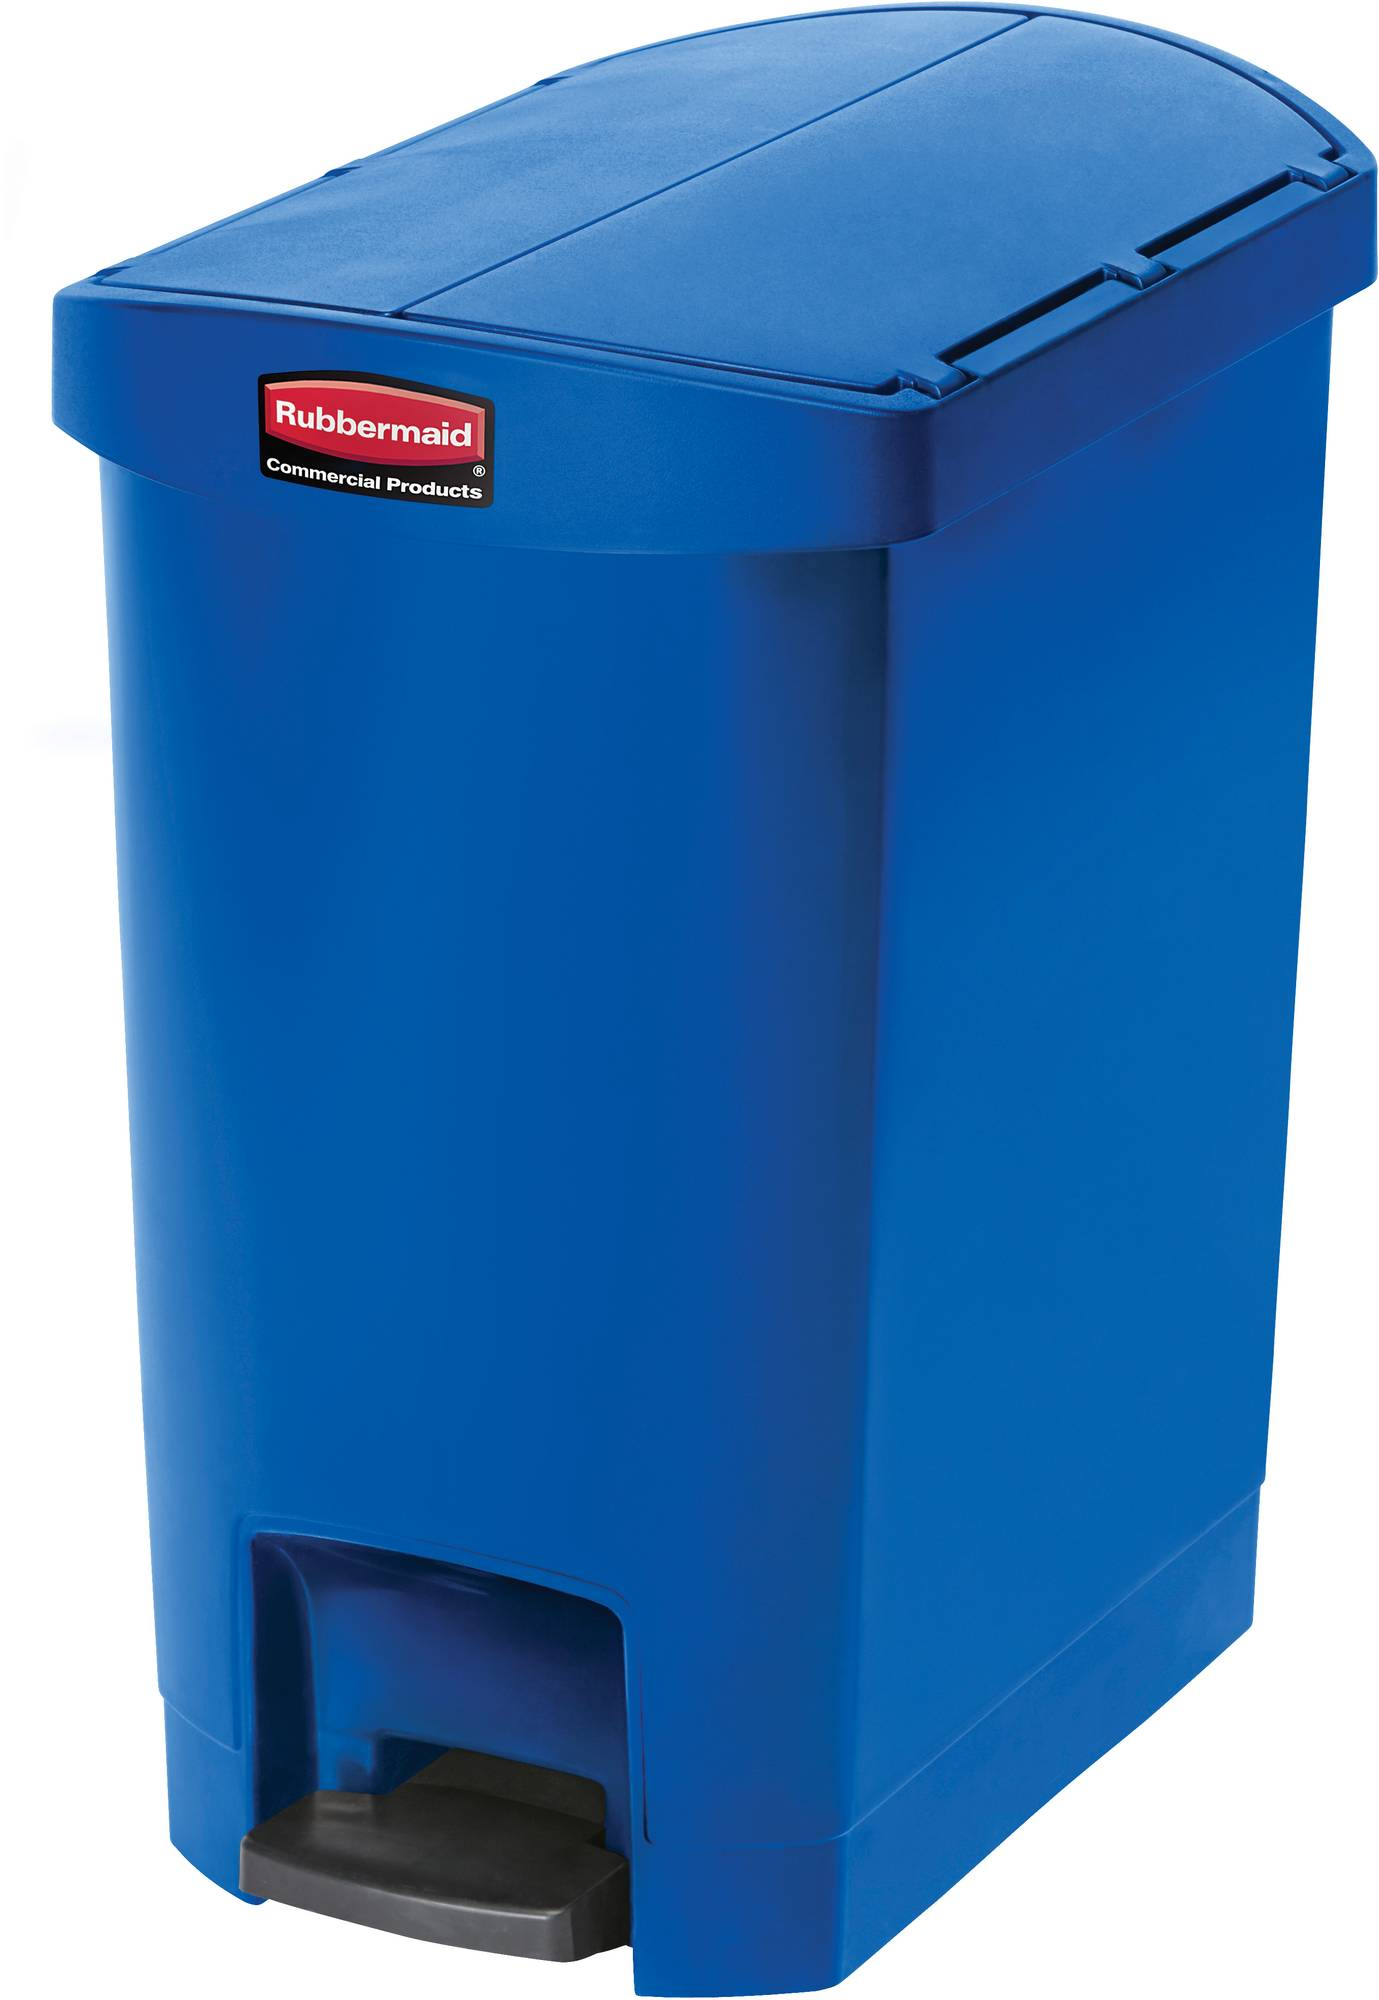 Rubbermaid Slim Jim Step On Container, End Step mit 30 Liter Füllmenge in Blau